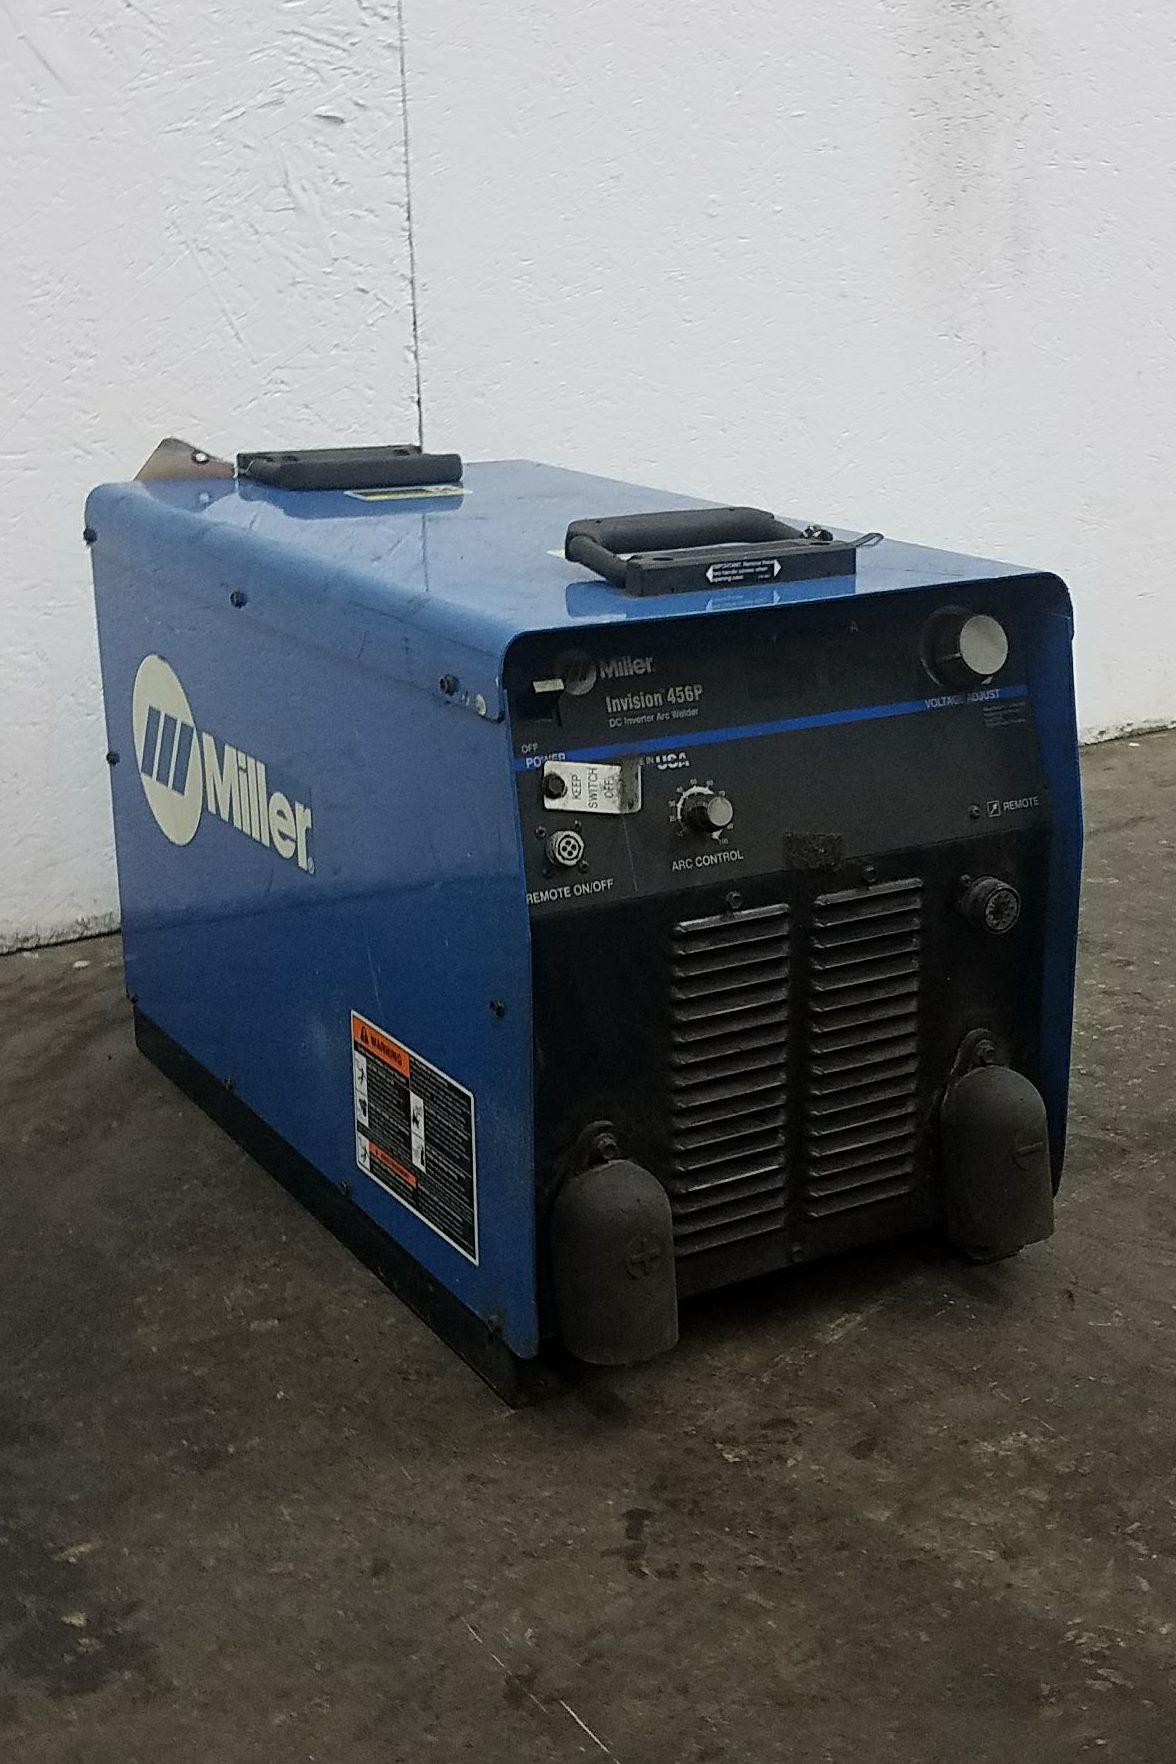 Miller Invision #456P Welding Machinery